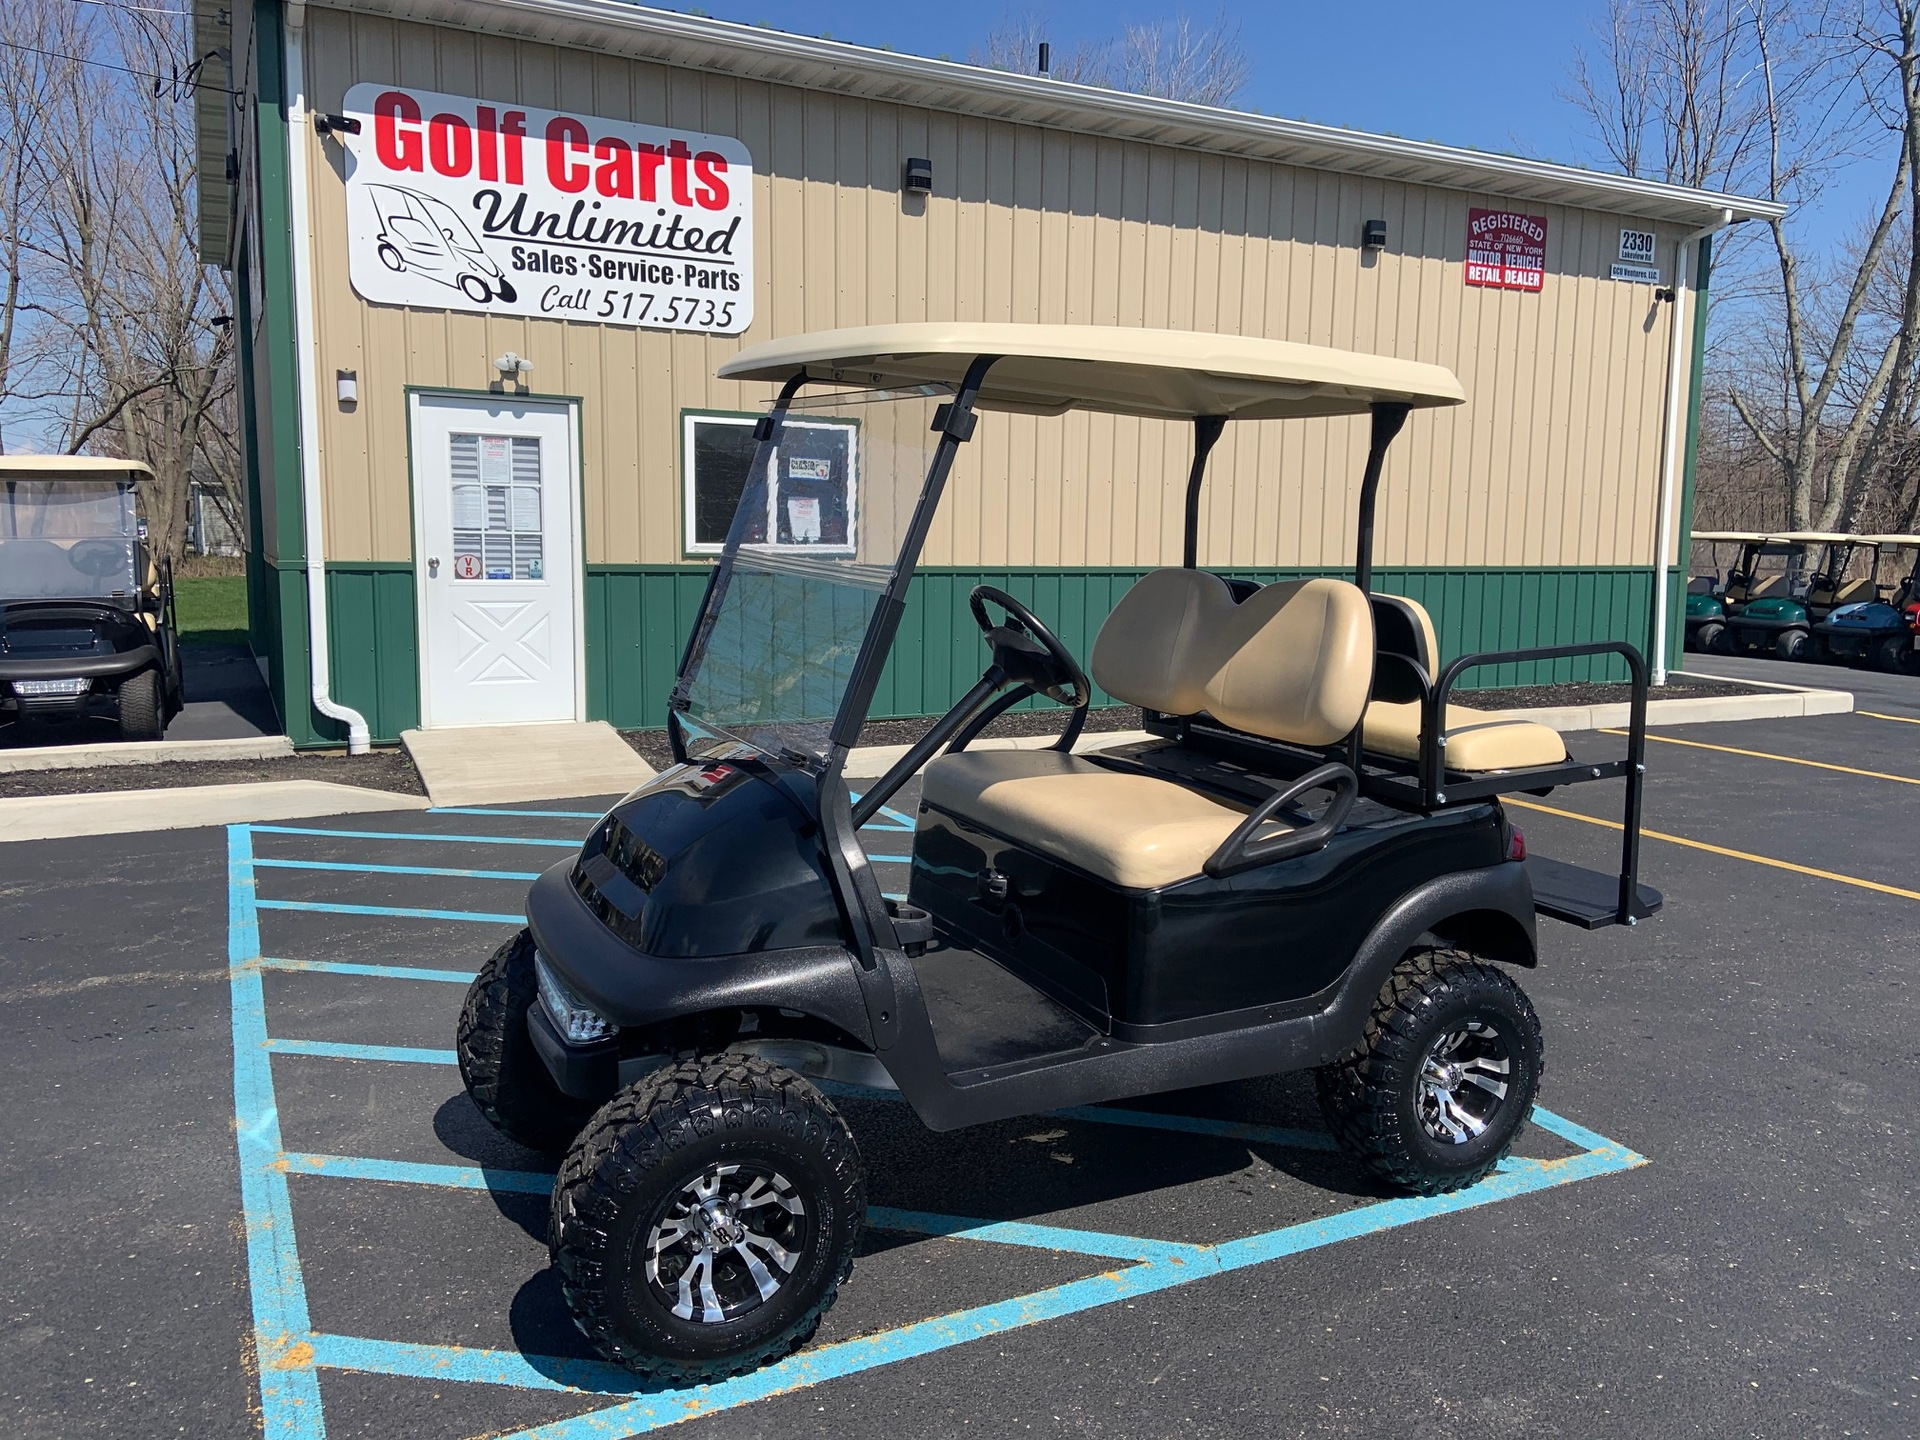 2015 Club Car Precedent Black Electric lifted golf cart